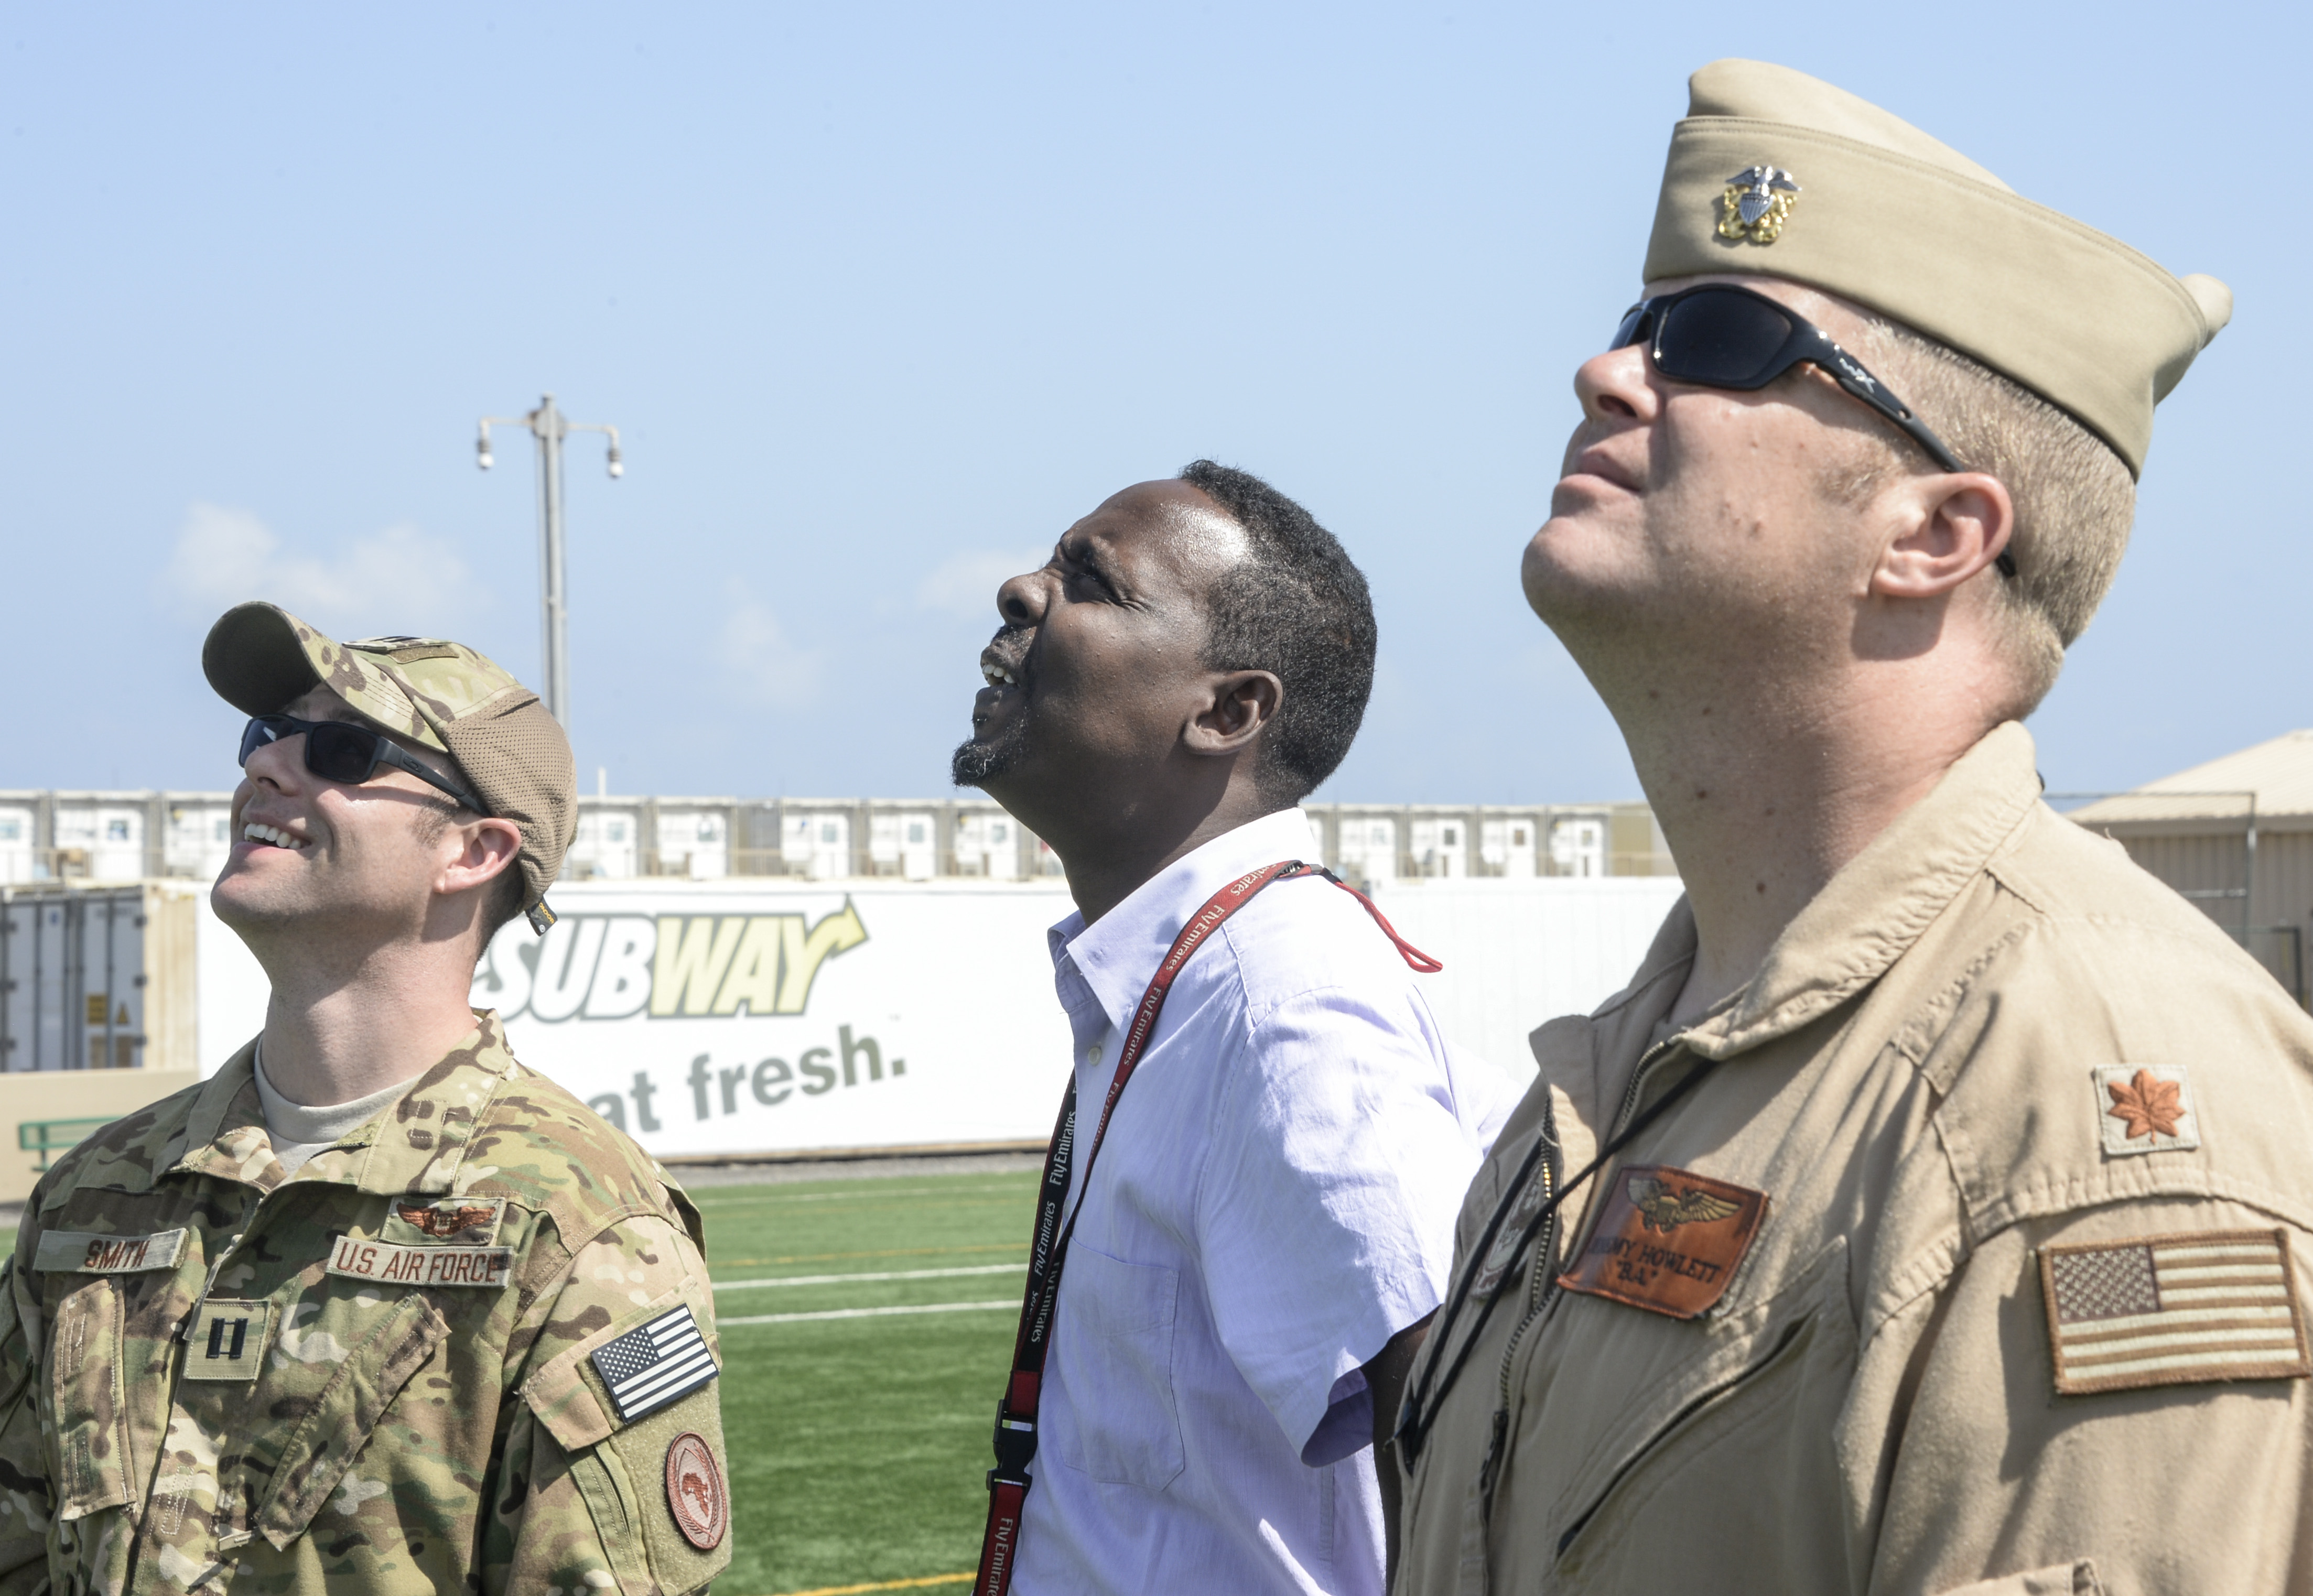 CAMP LEMONNIER, DJIBOUTI- U.S. and Djibouti officials observe the launch of a weather balloon as part of the Upper Air Sounding Project at Camp Lemonnier, Dec. 8, 2016. The Upper Air Sounding Project is a joint venture between the Horn of Africa and the special operation forces on behalf of Special Operations Command Africa. The weather balloon demonstration was to help the government of Djibouti understands the effects of a balloon launch would have on the air traffic in the surrounding air space.